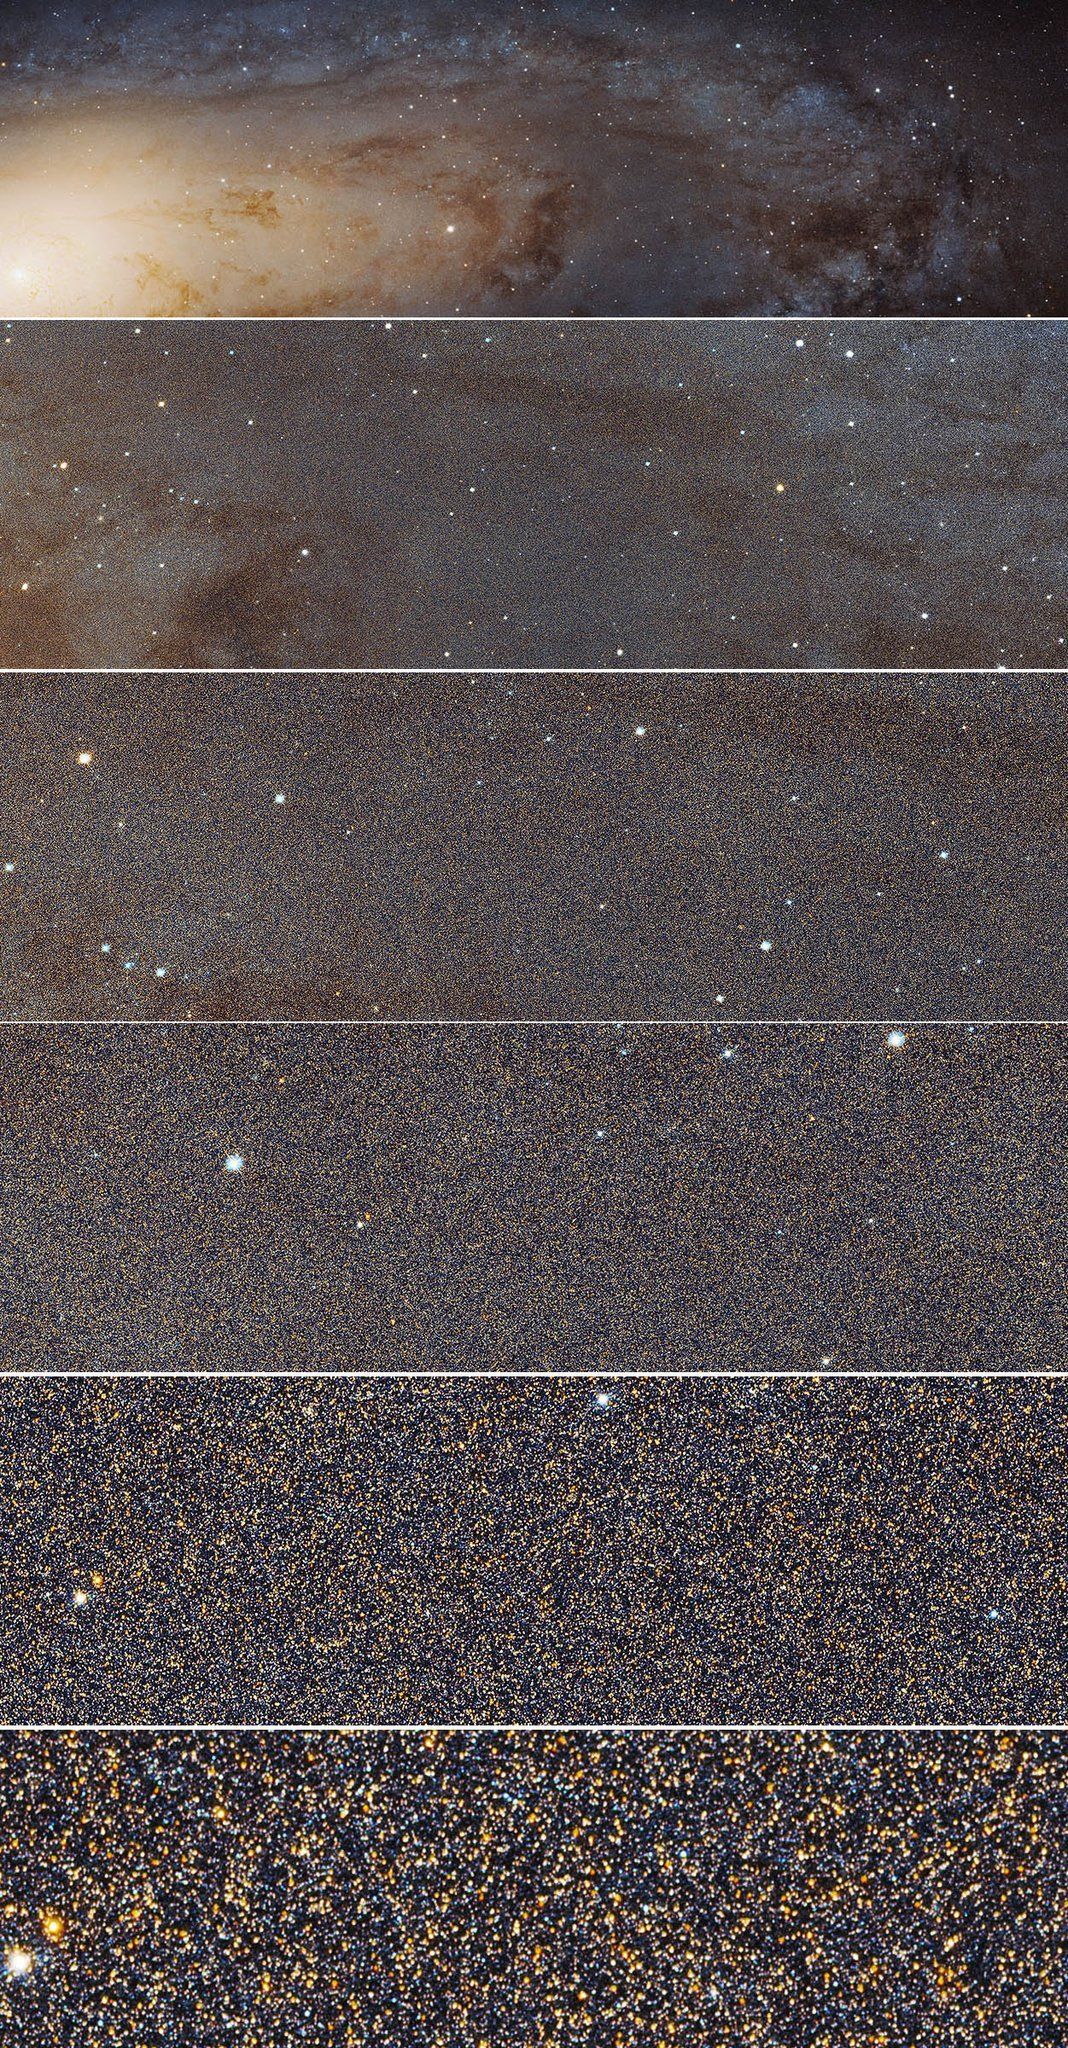 The close-up of the Andromeda Galaxy from the Hubble Space Telescope shows how many stars there really are. https://t.co/VM4WXGJ3mF